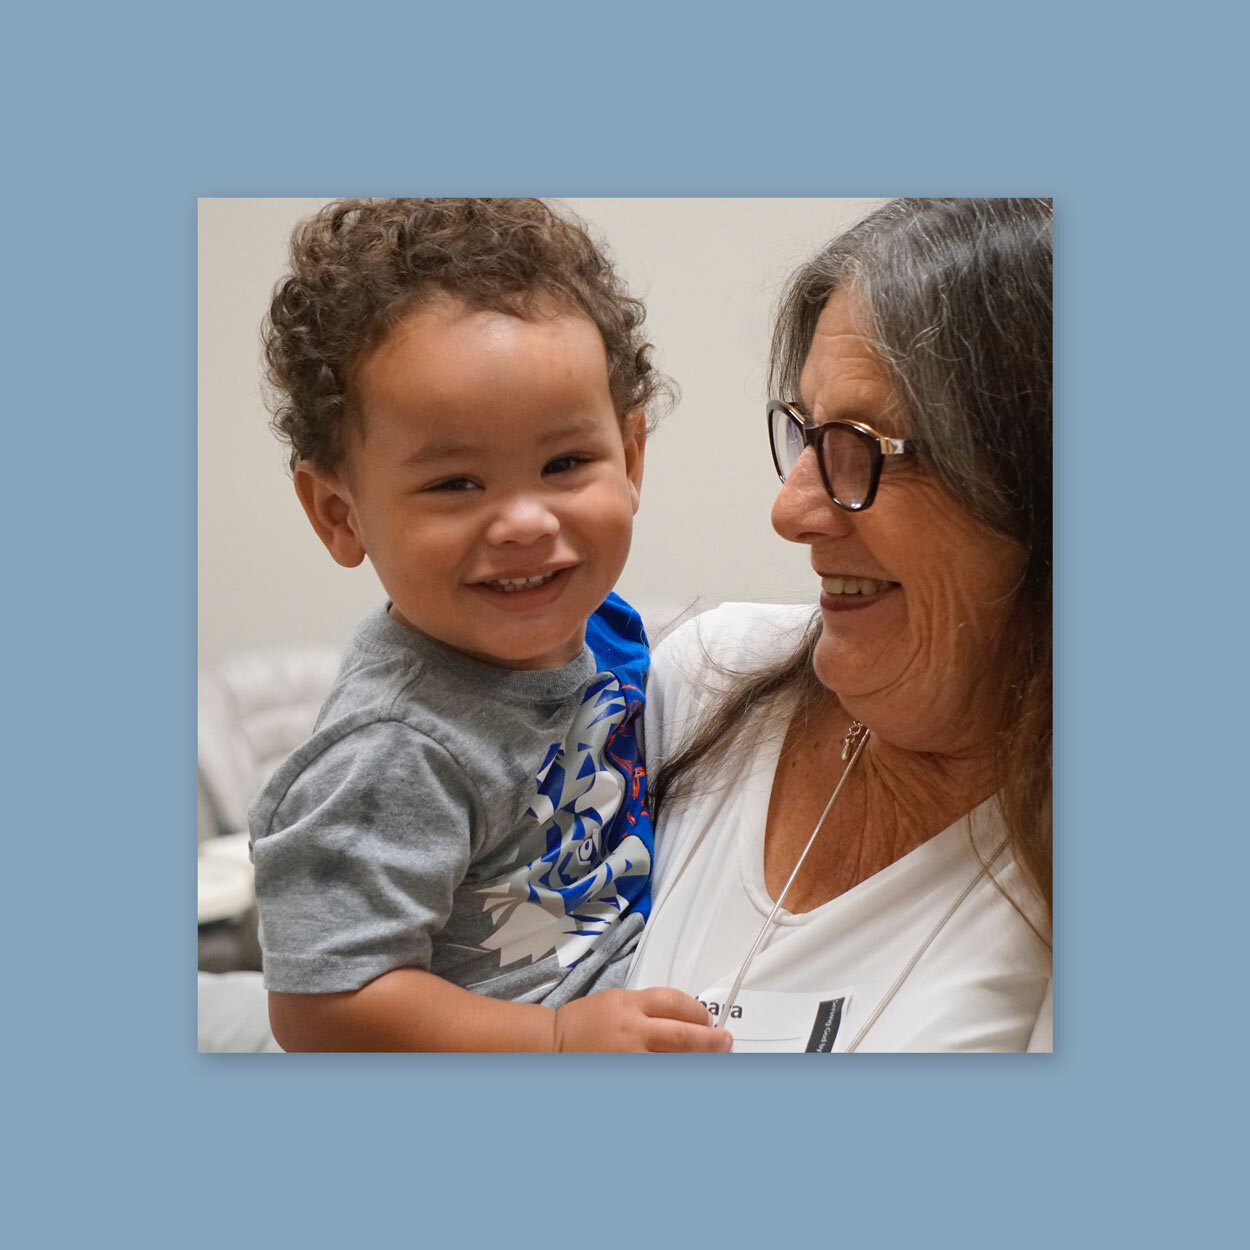 Infant - 6 WKS - 23 MNTHSDC Kids Nursery is a place for babies to discover who God is through the love, care, and prayer they receive from our staff. Our nursery rooms are well staffed and prepared with age-appropriate toys that are thoroughly cleaned every week.